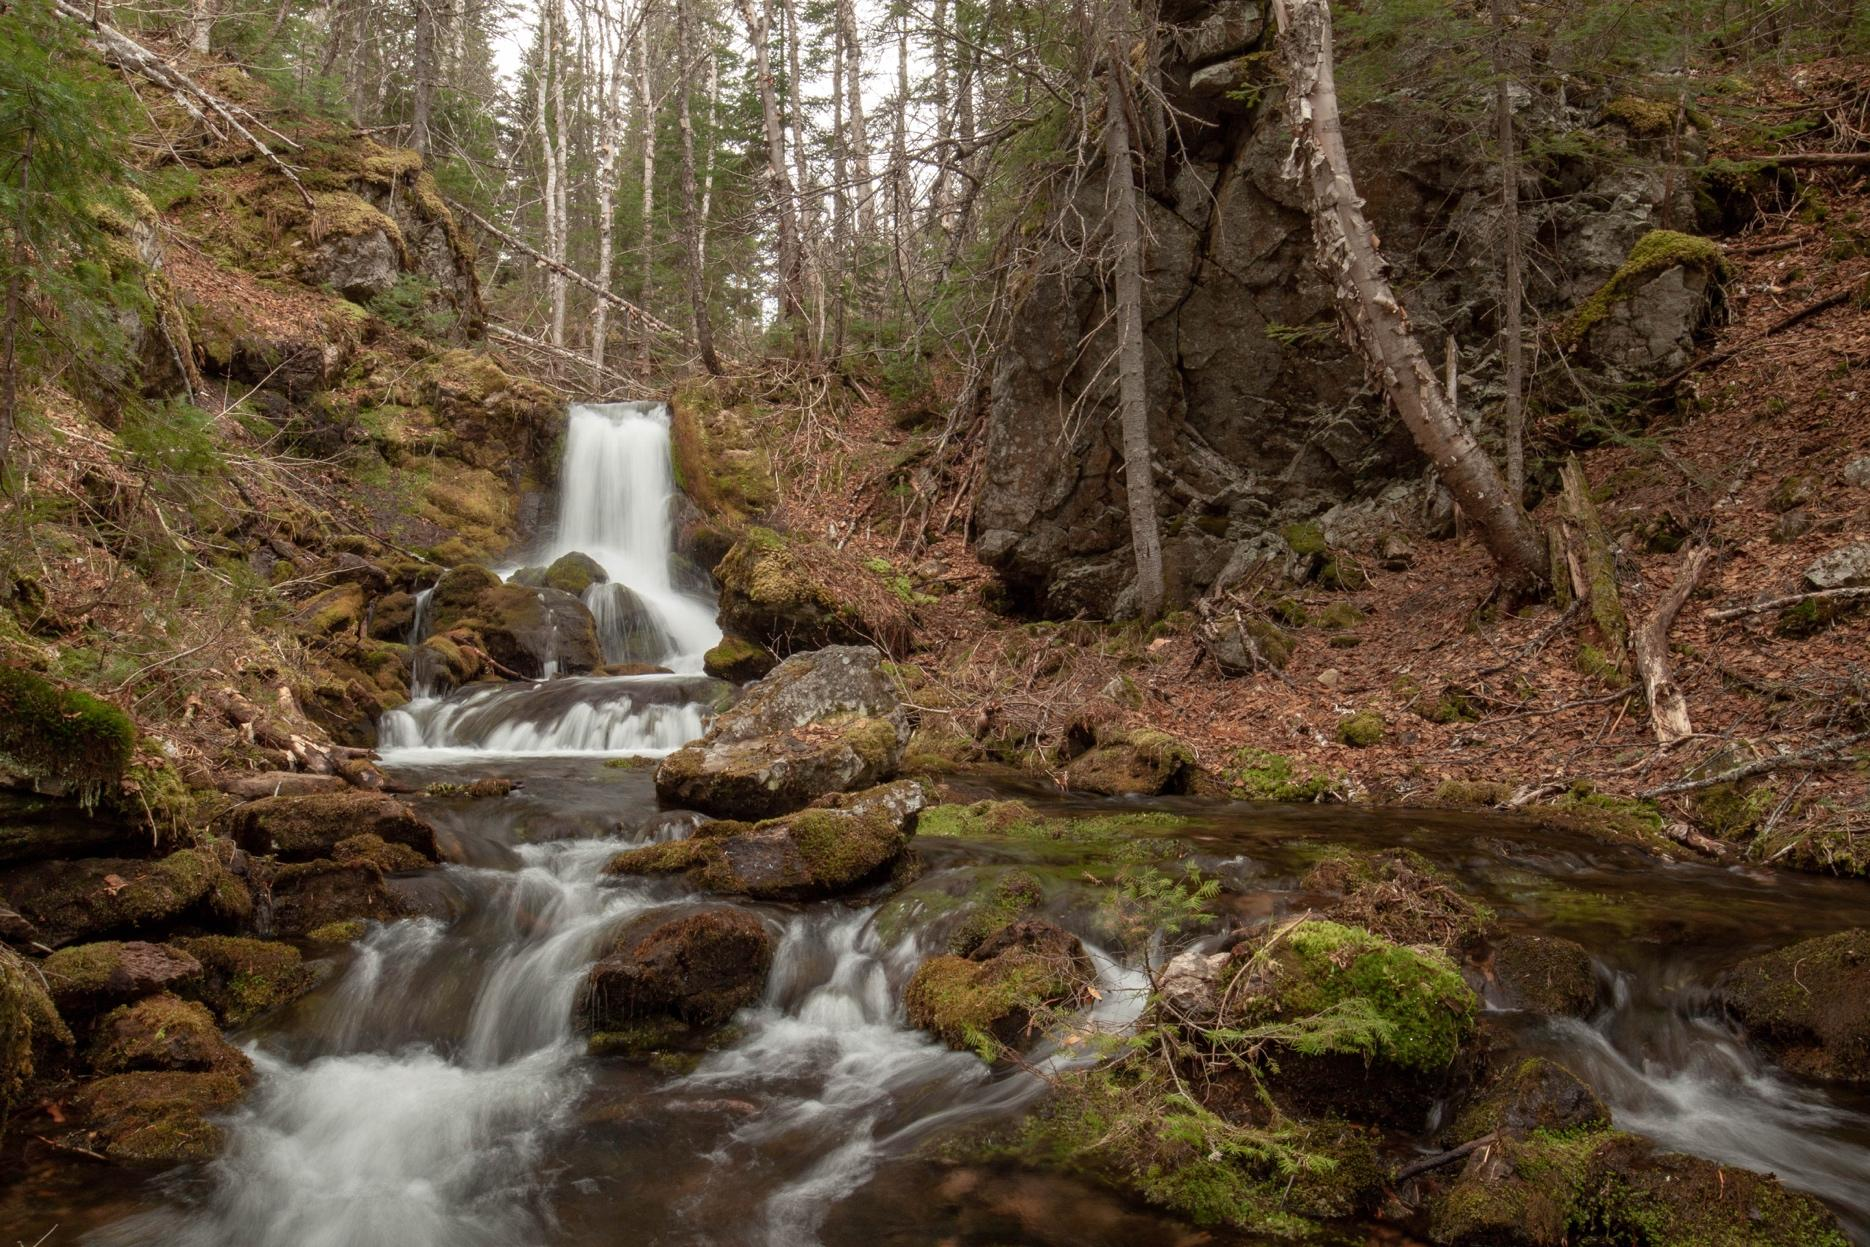 A picture containing nature, outdoor, tree, waterfallDescription automatically generated